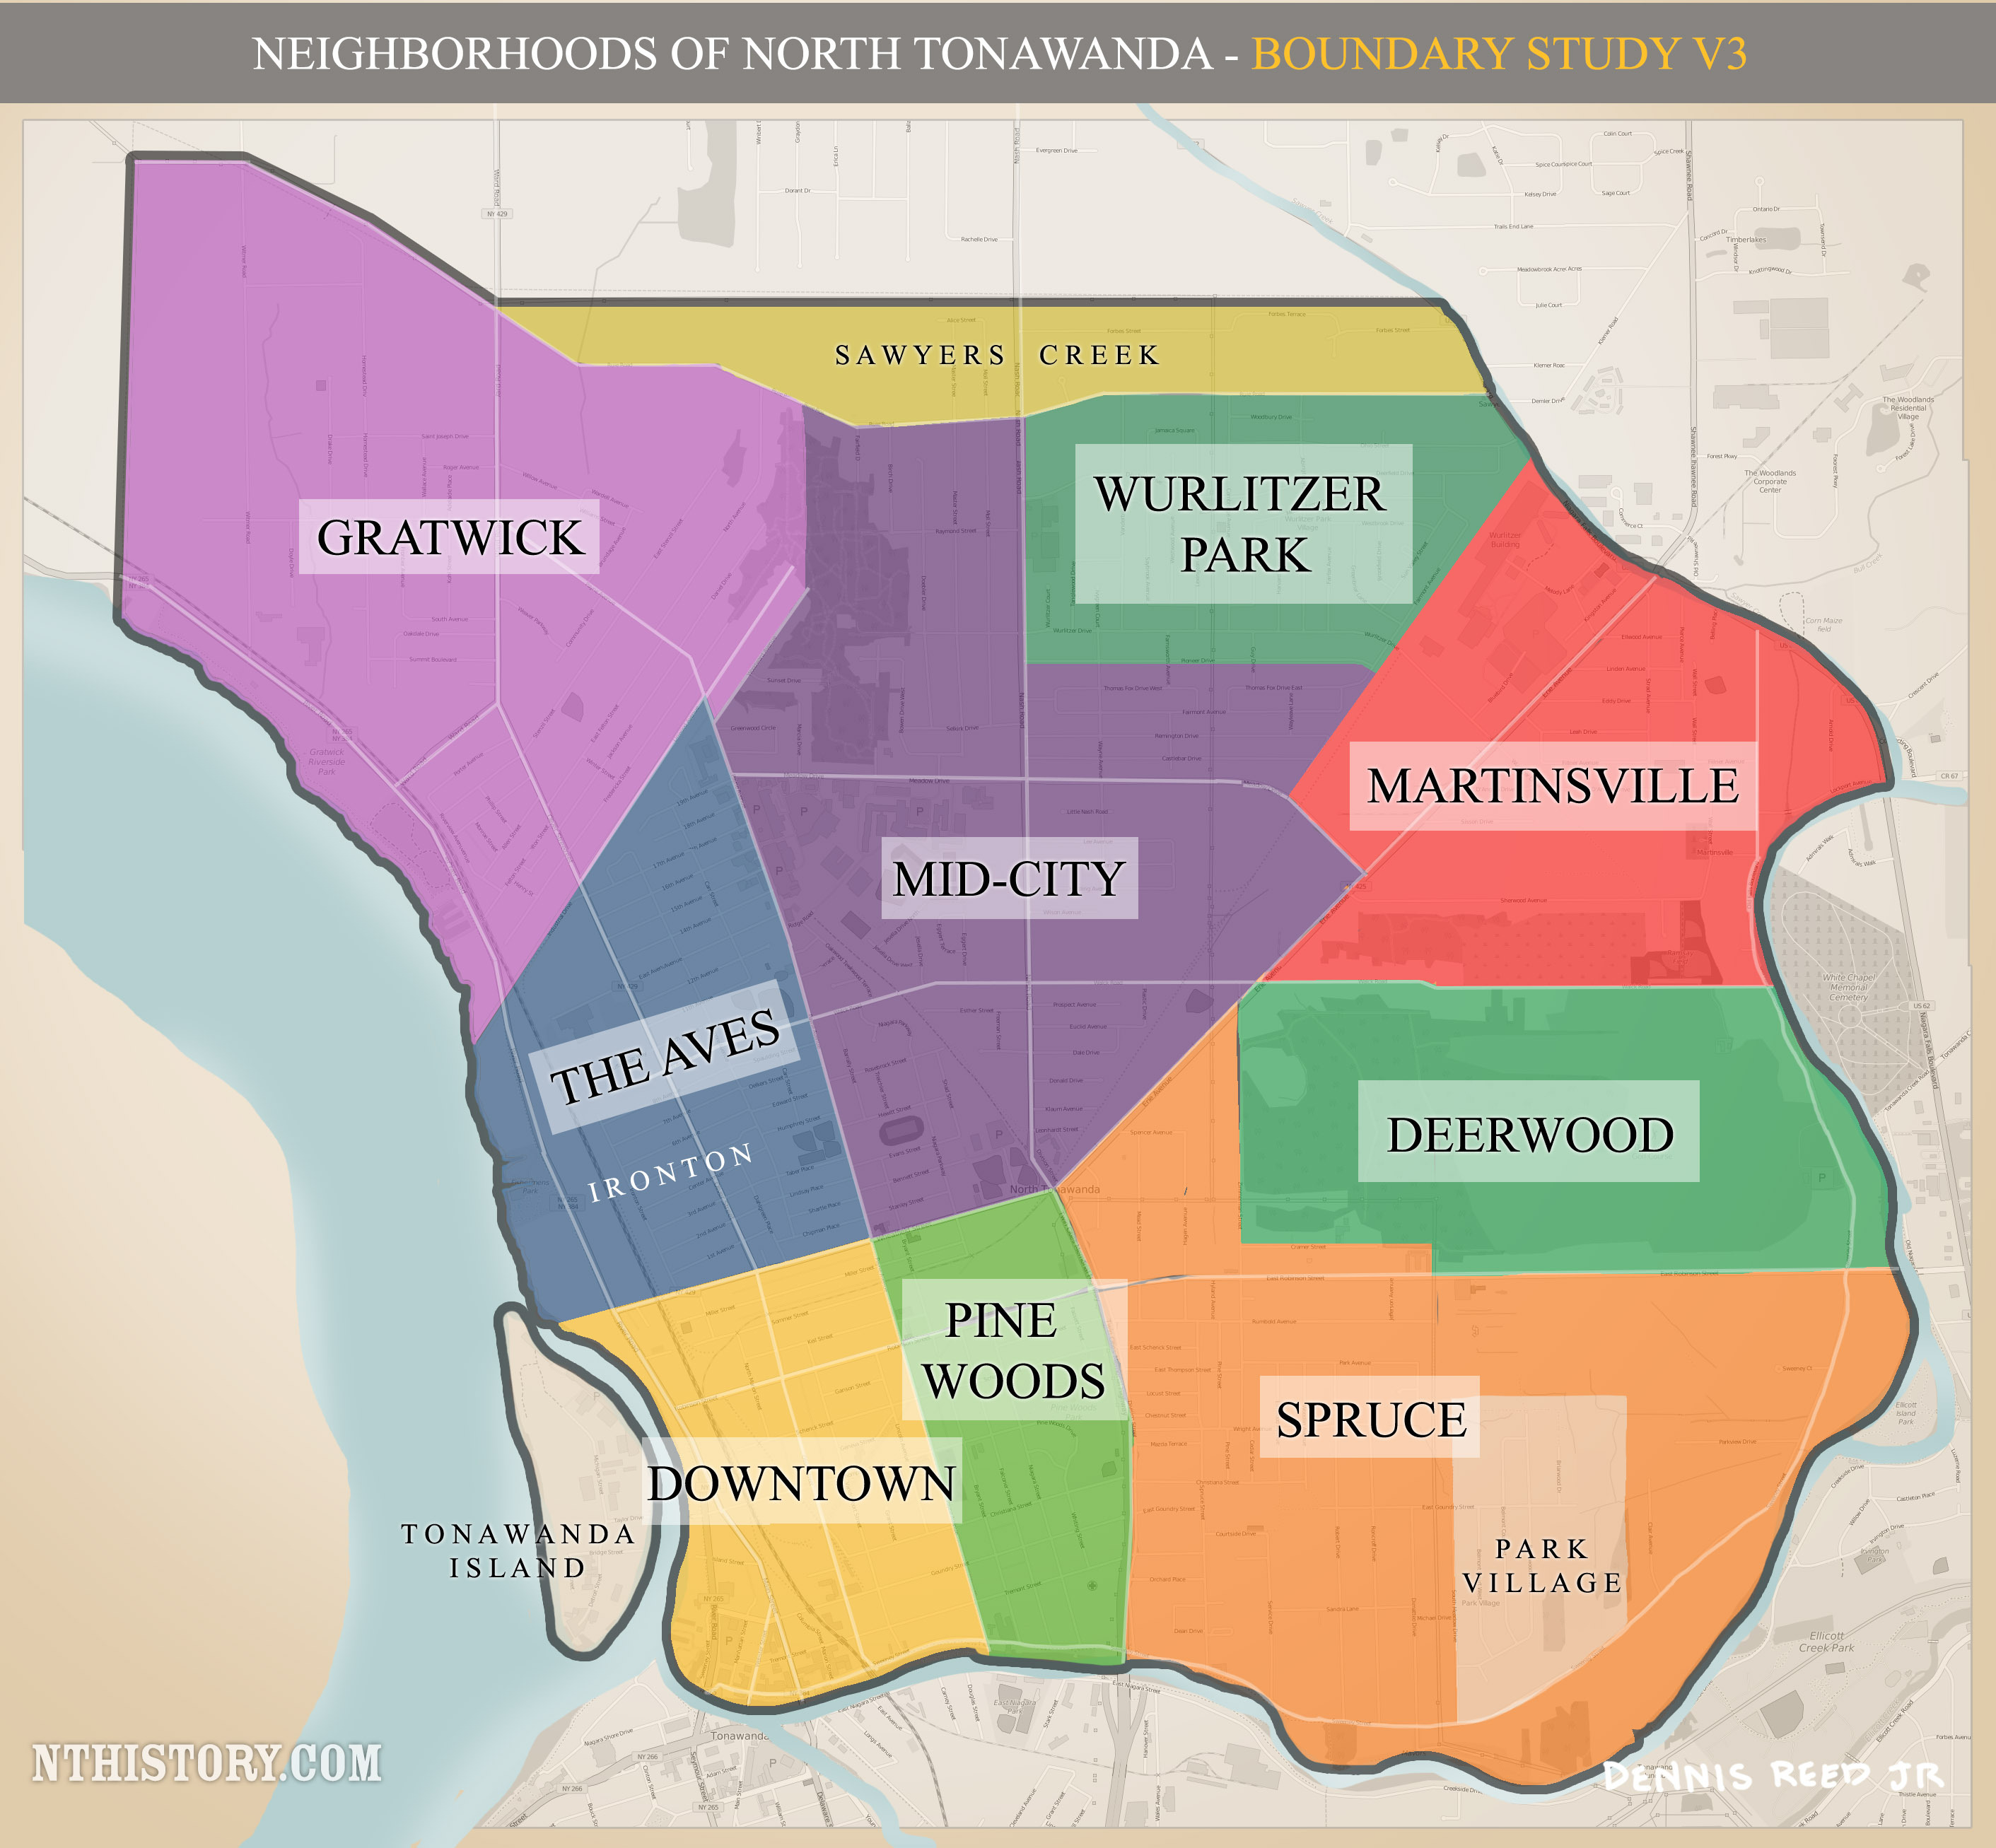 NT neighborhoods map v3.jpg